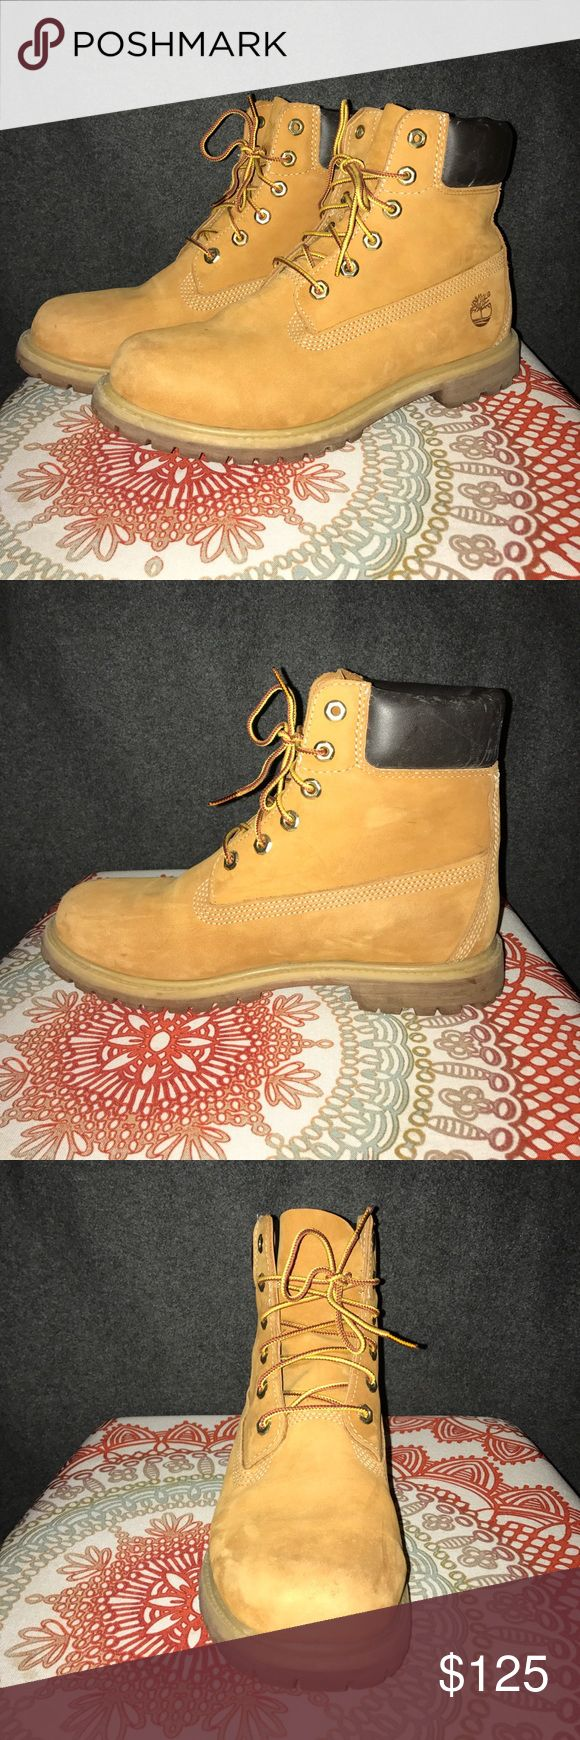 Women's Timberland 6-Inch Premium Boots Barely worn, fantastic condition Timberland boots! Premium 6-Inch style, Wheat Nubuck color, size 10 in women's. Timberland Shoes Ankle Boots & Booties